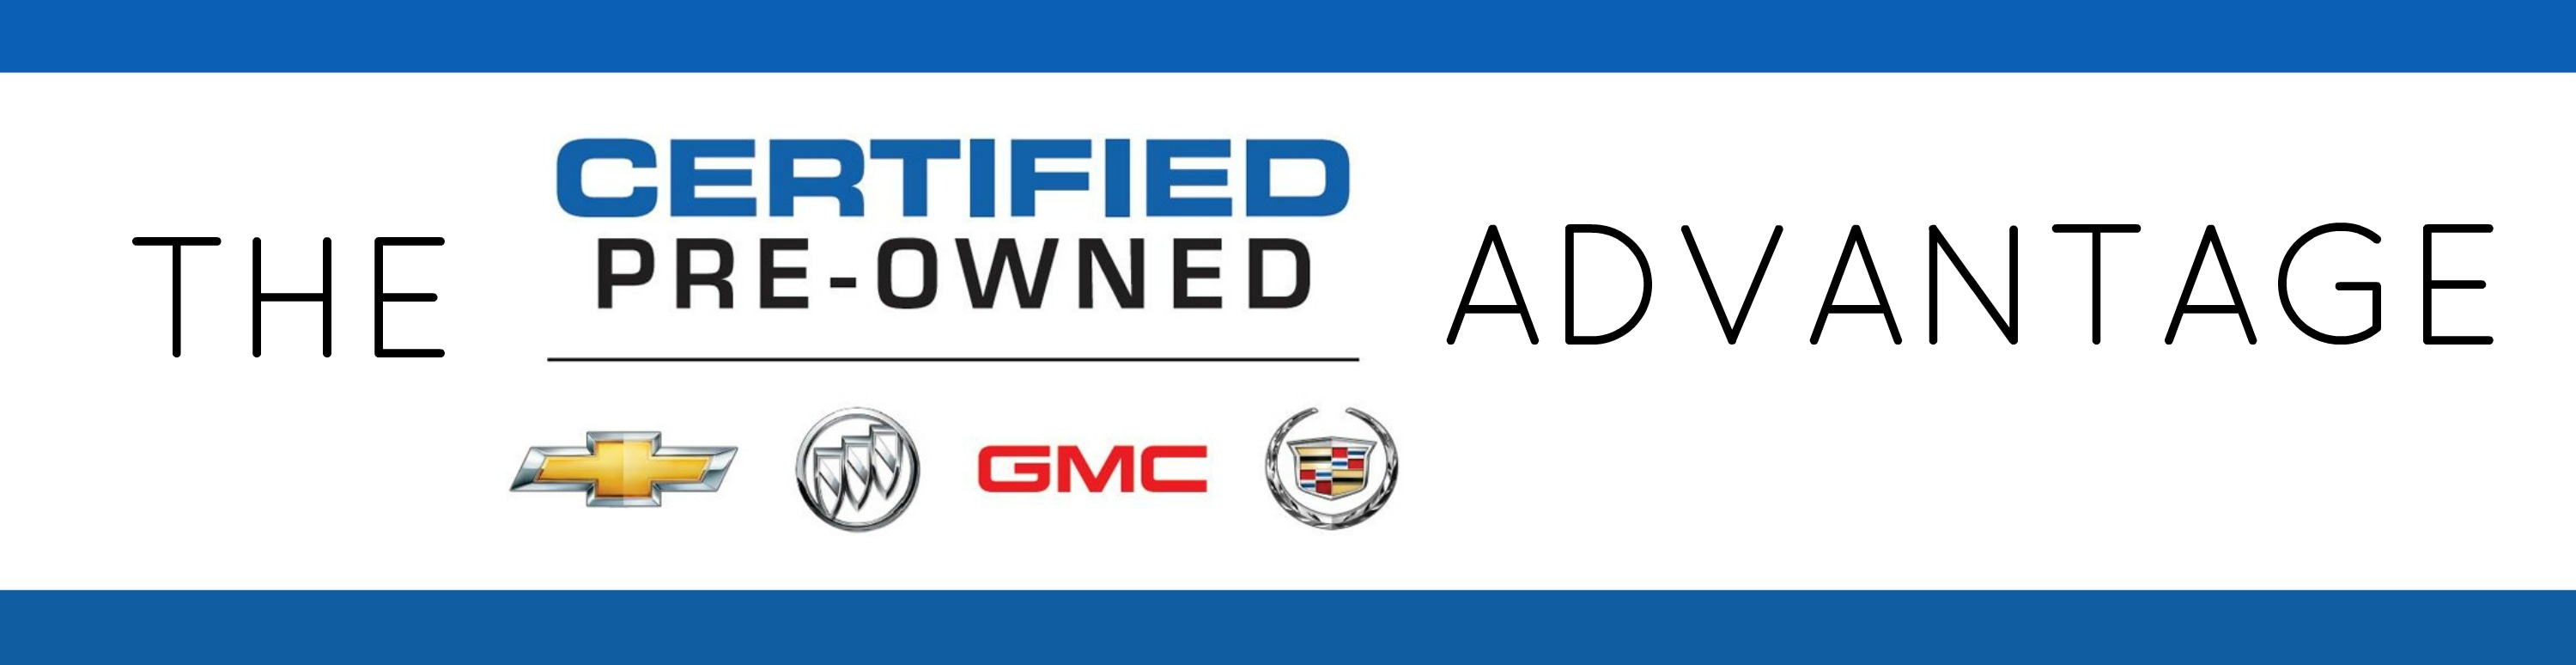 the gm certified pre owned advantage at boyer chevrolet lindsay. Cars Review. Best American Auto & Cars Review